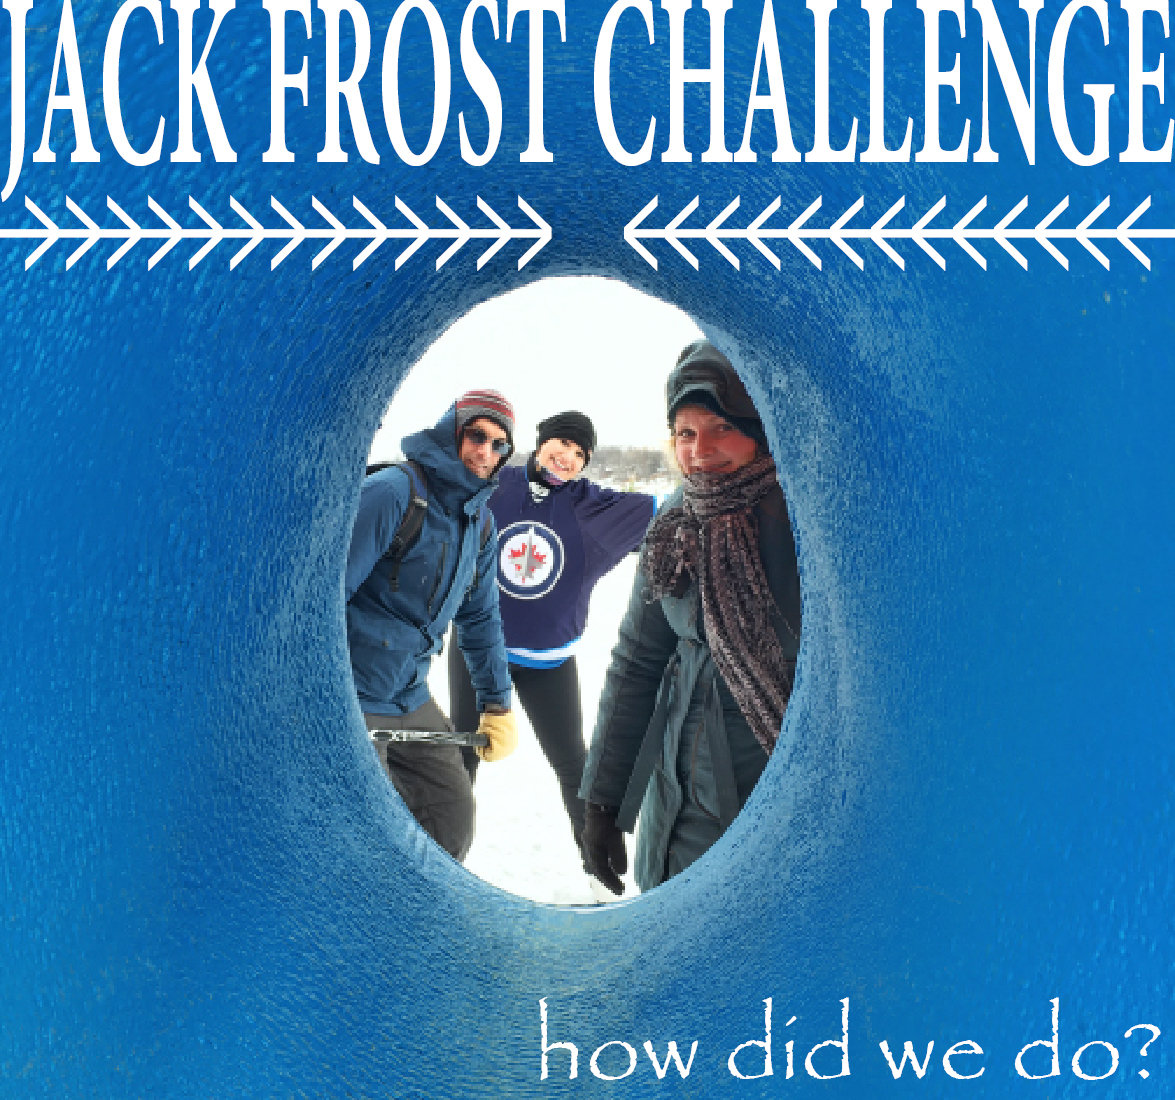 Jack Frost Challenge: how did we do?